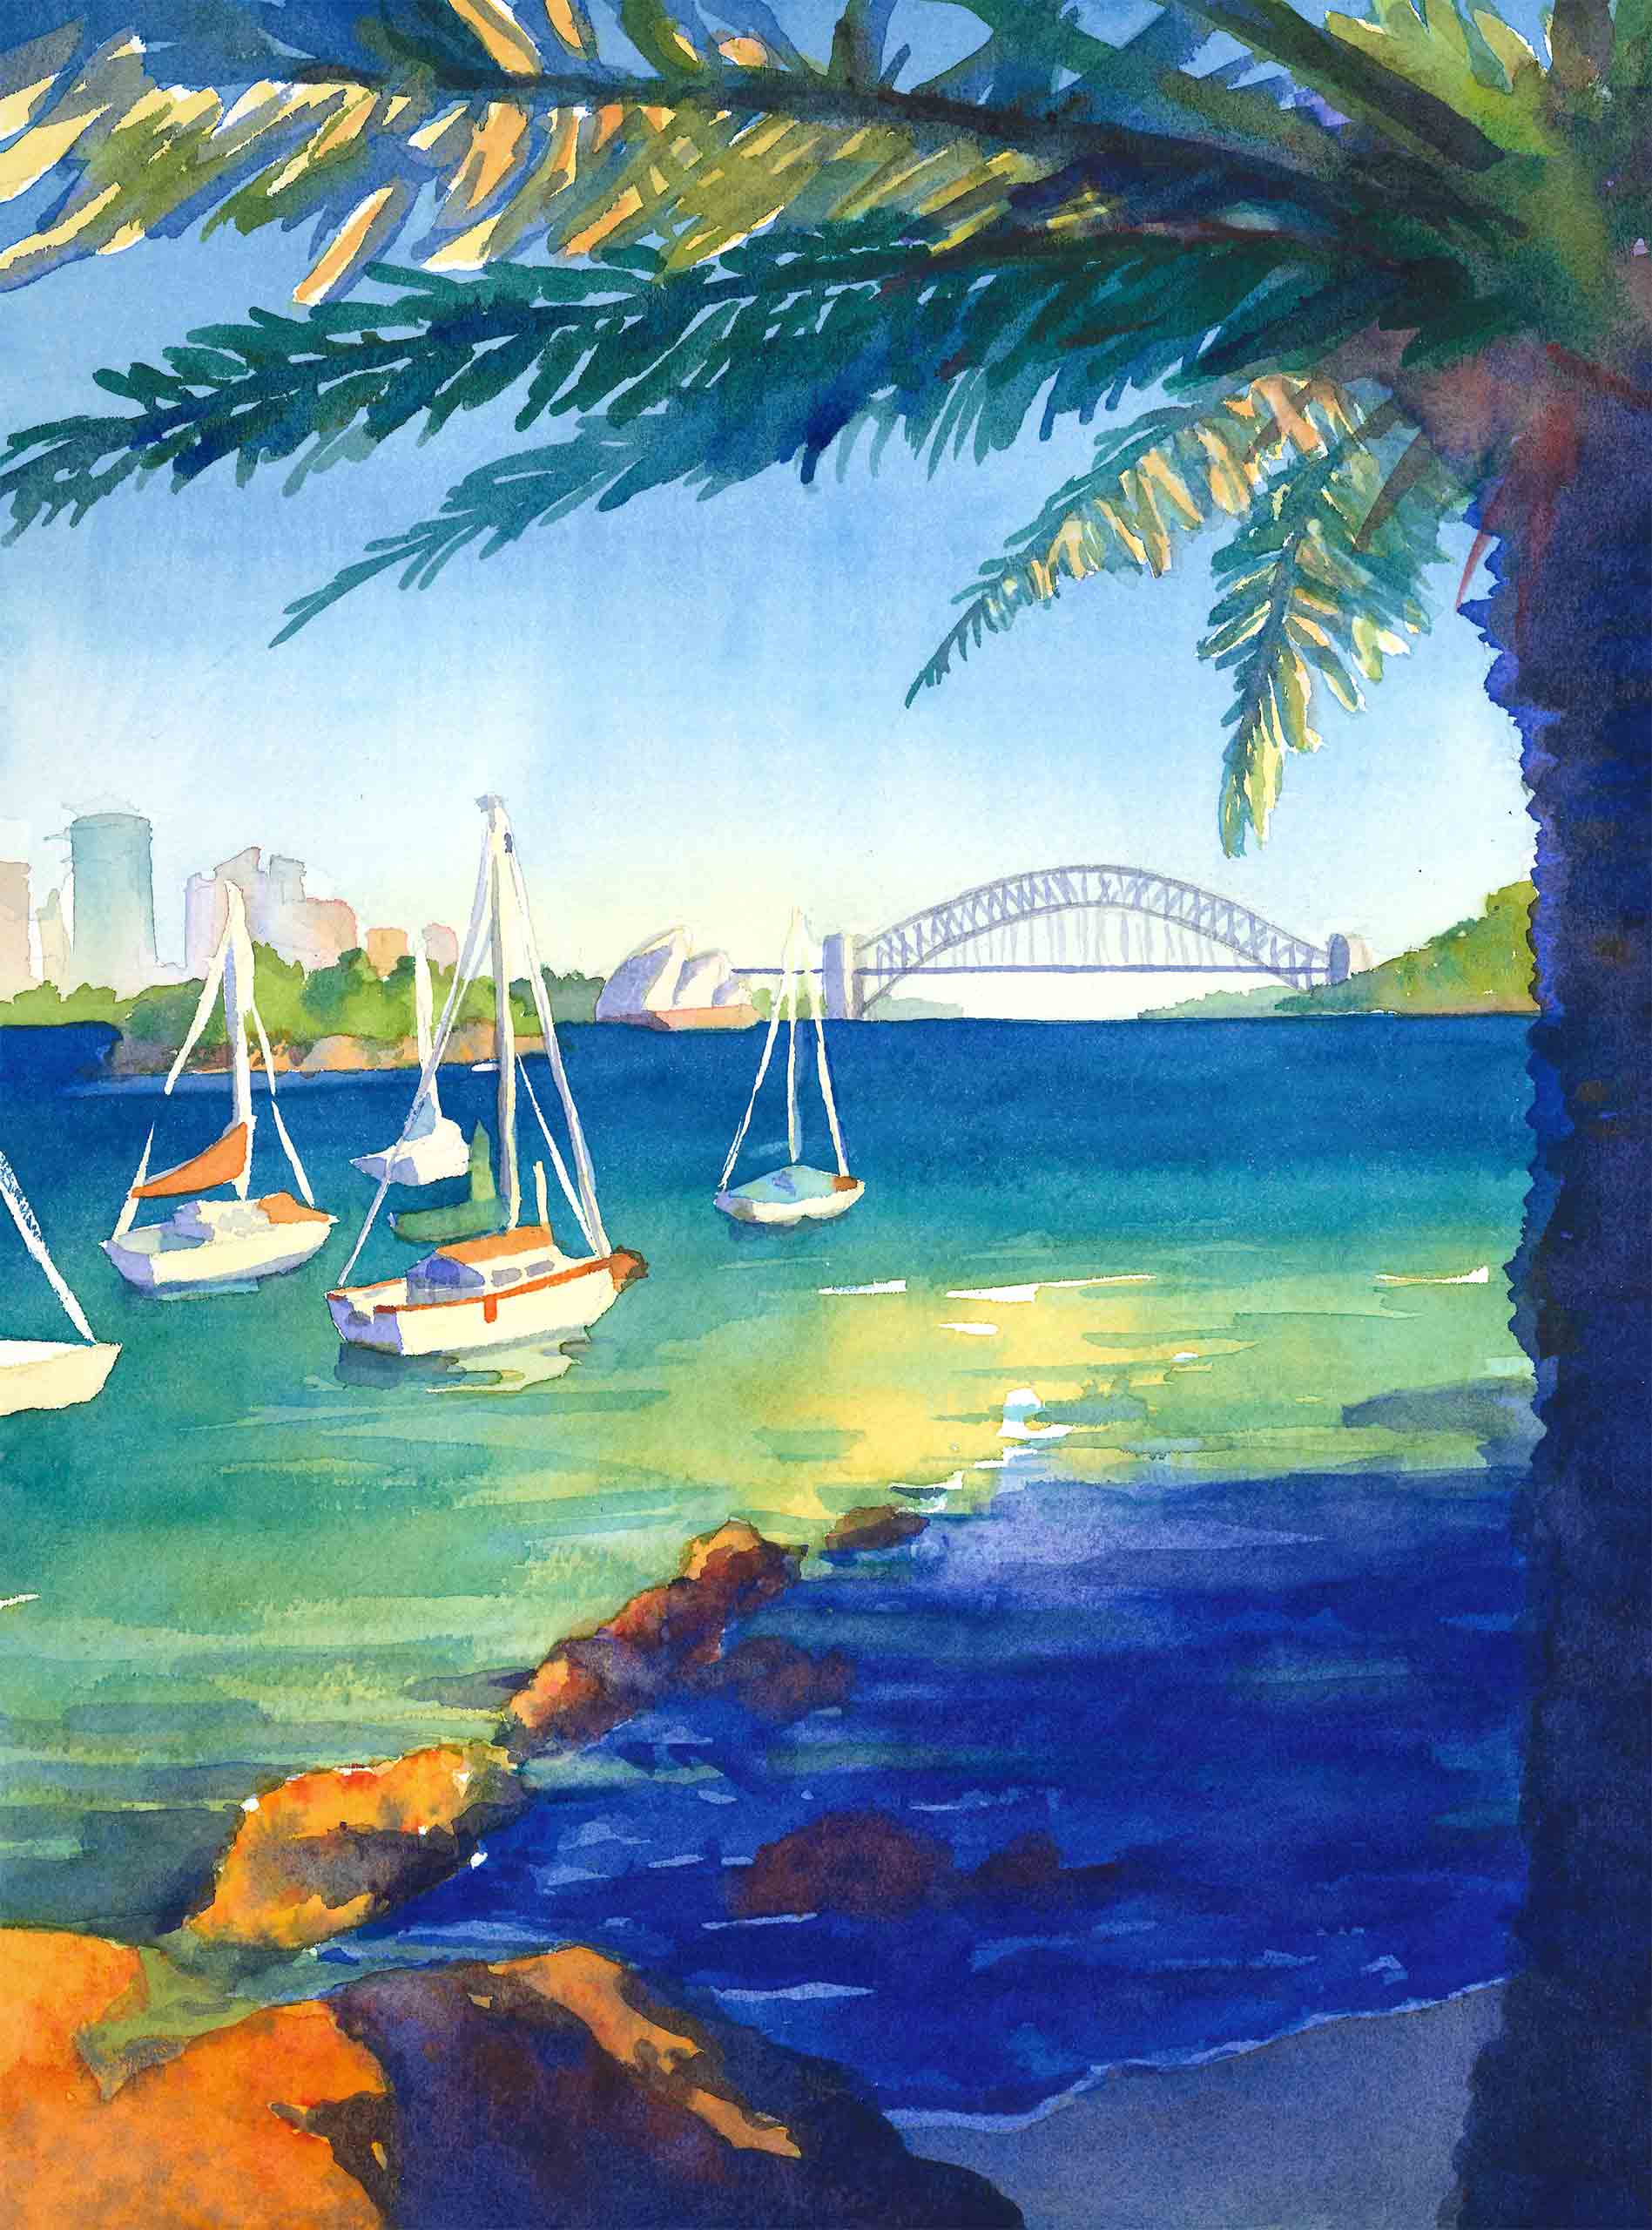 Scan of a watercolour painting of the Sydney harbour with boats moored and the Harbour Bridge in the distance